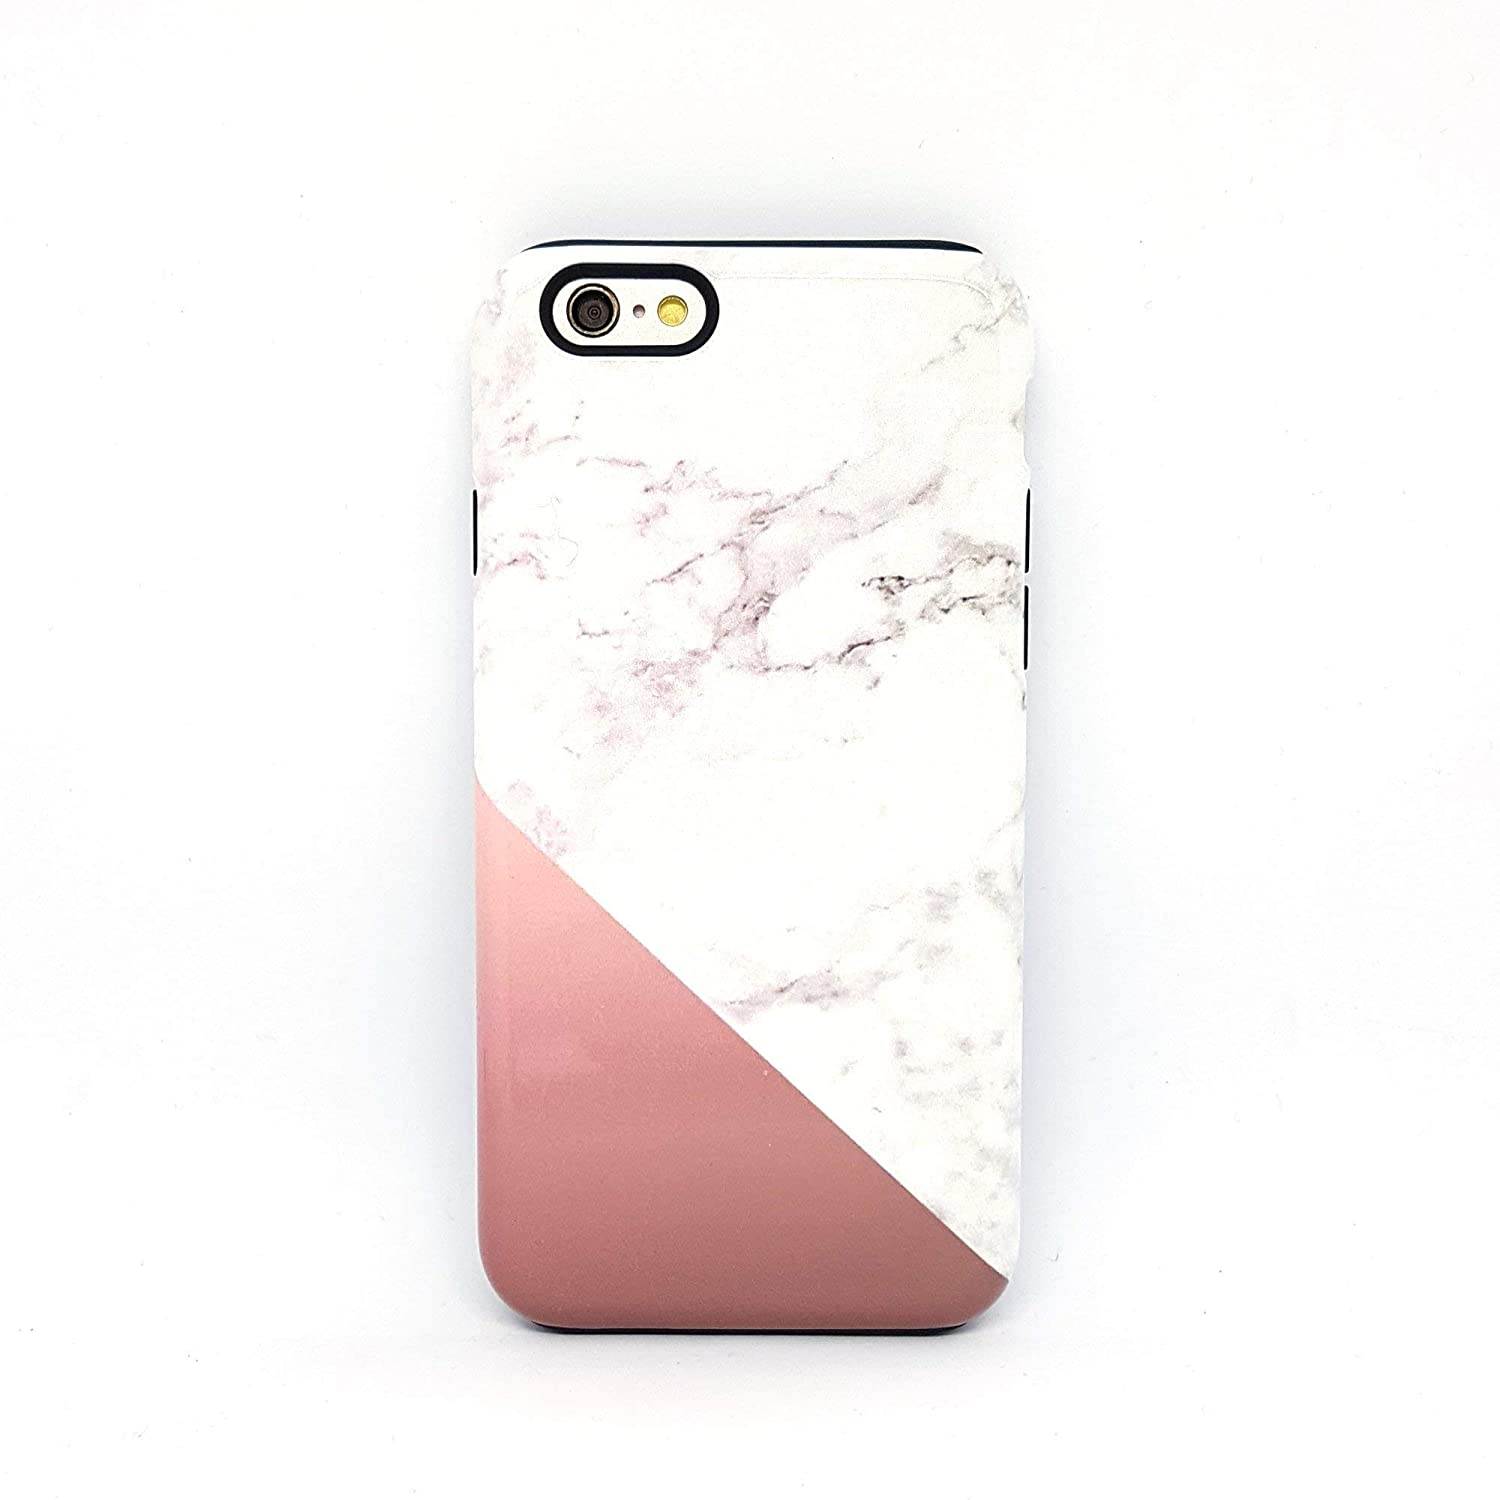 Marble Geometric cover case TPU Tough for iPhone 5, 5s, 6, 6s, 7, 7 plus, 8, 8 plus, X, XS, for Galaxy S6, S7, S8